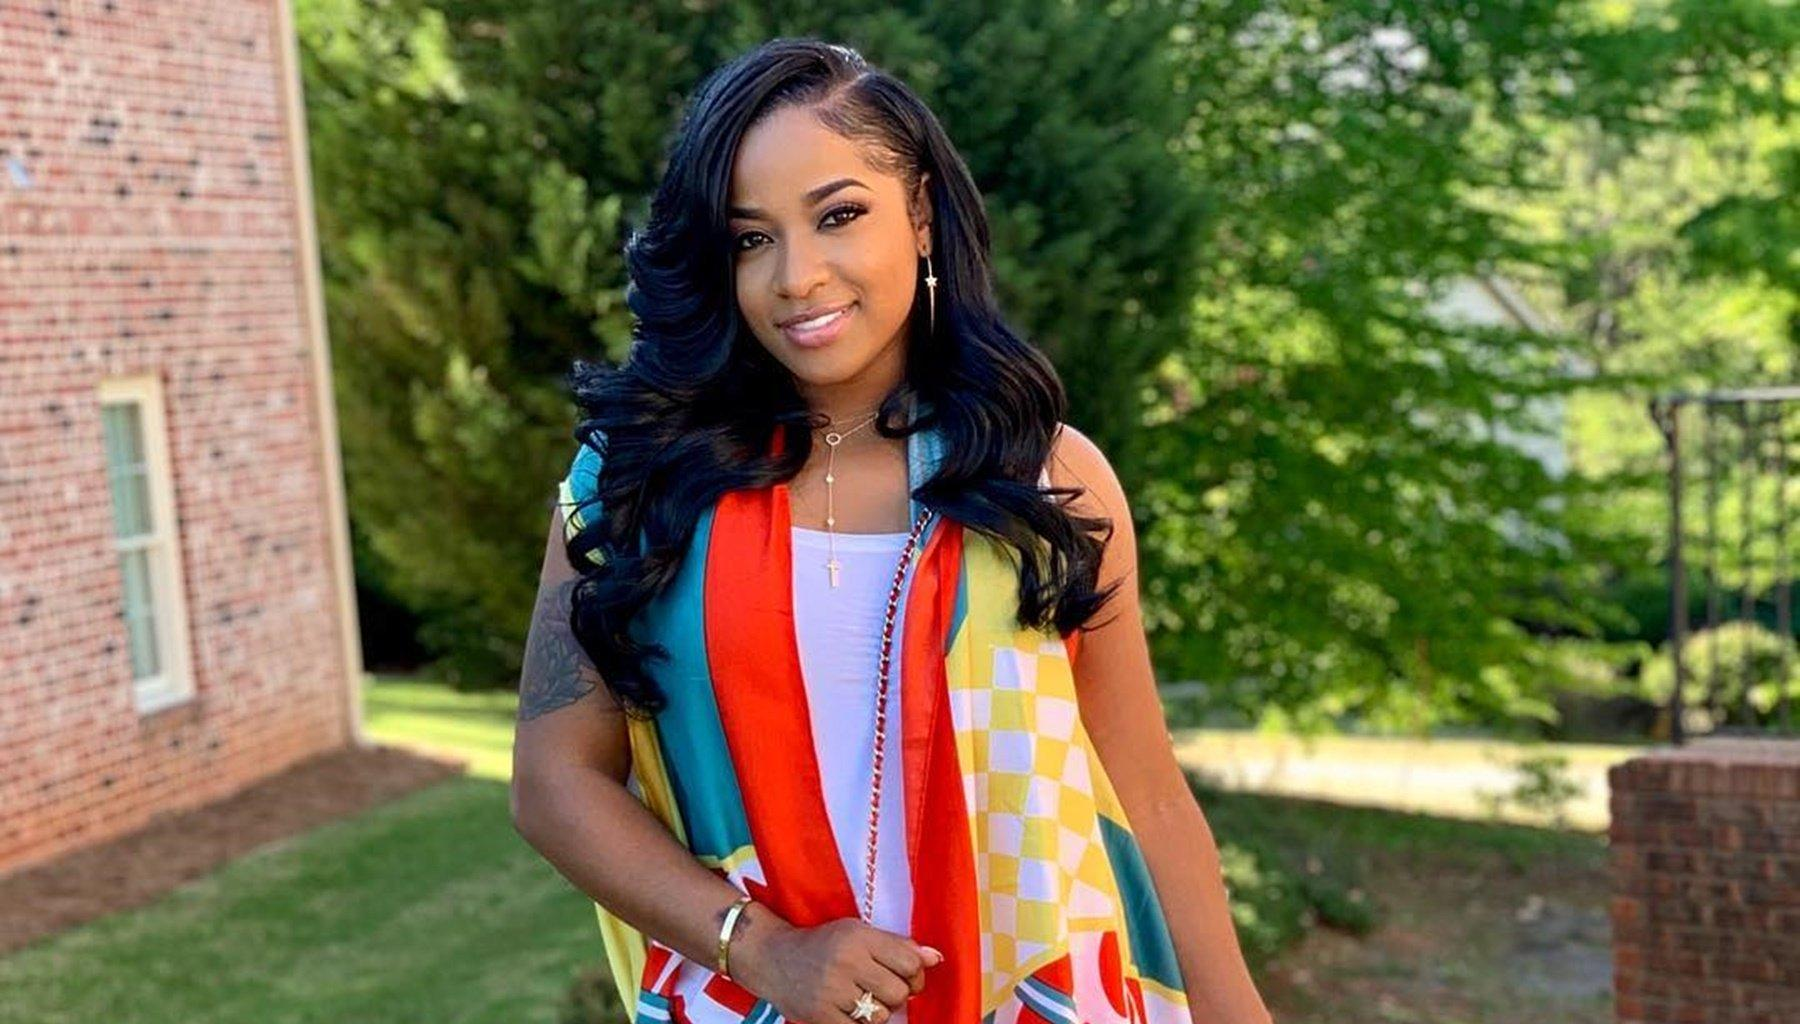 Toya Johnson's Latest Photos Have Fans Saying That Her Body Is Perfect